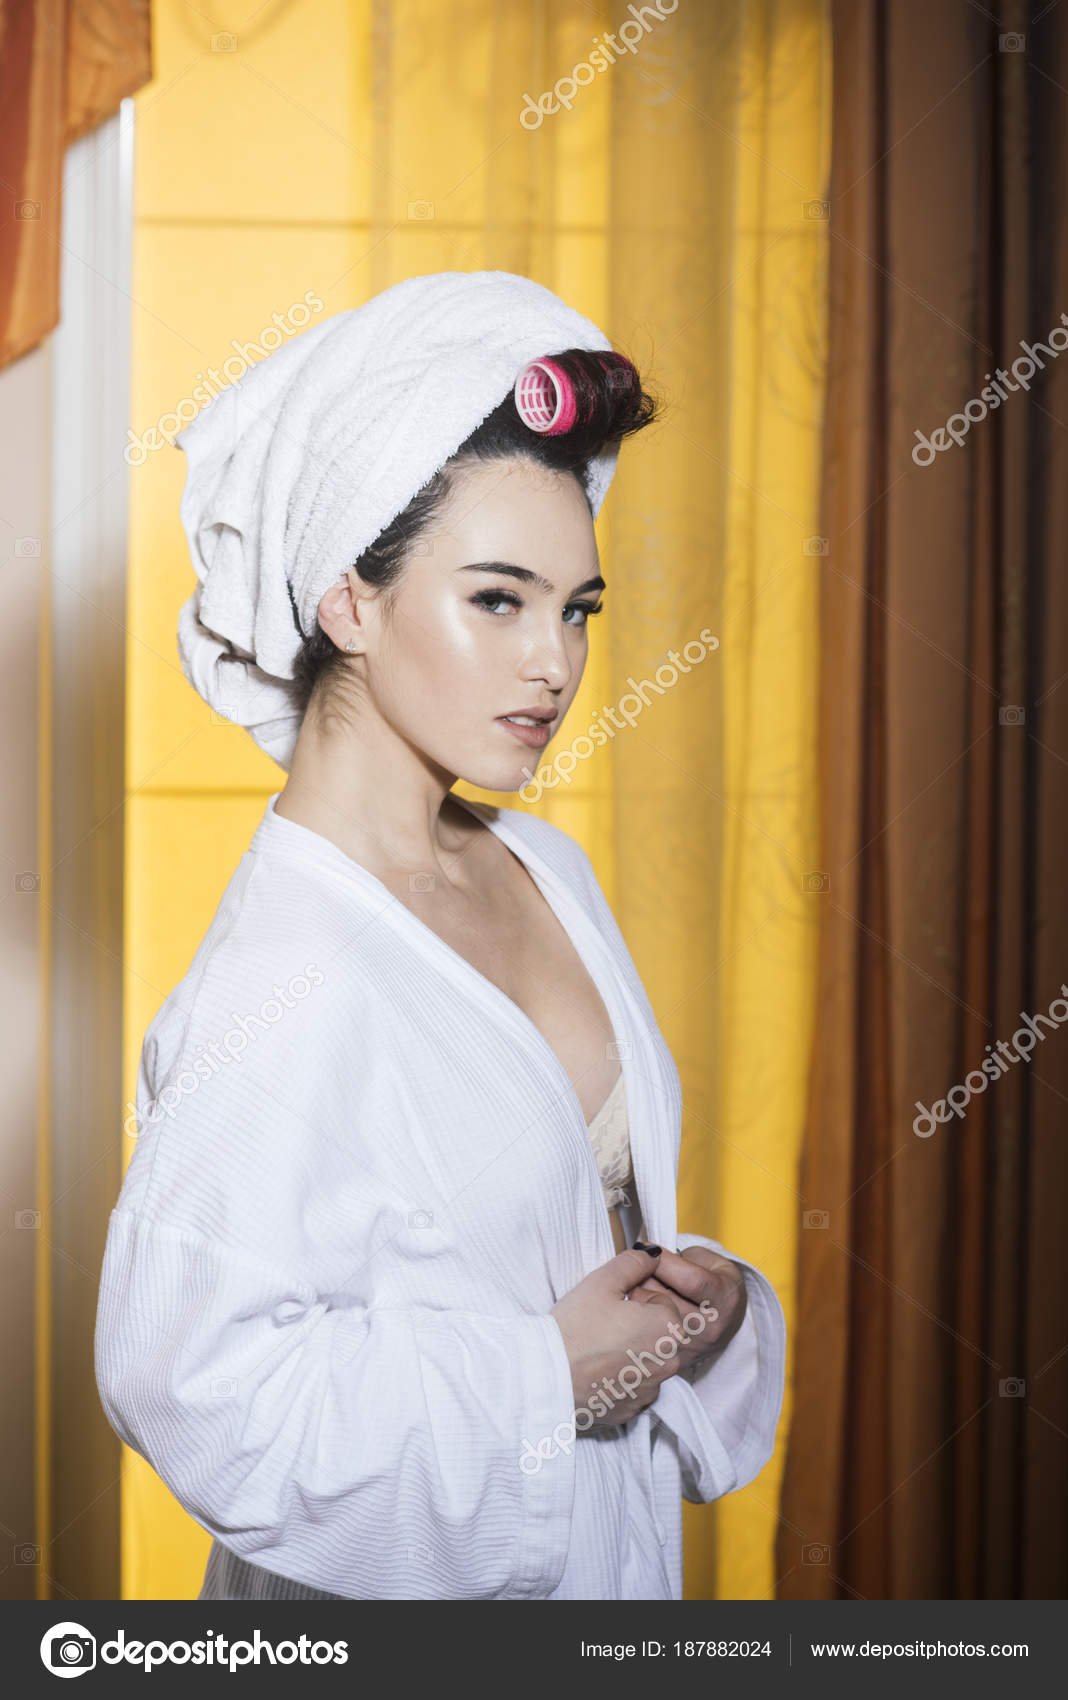 Understood girl bathrobe flash nude recommend you